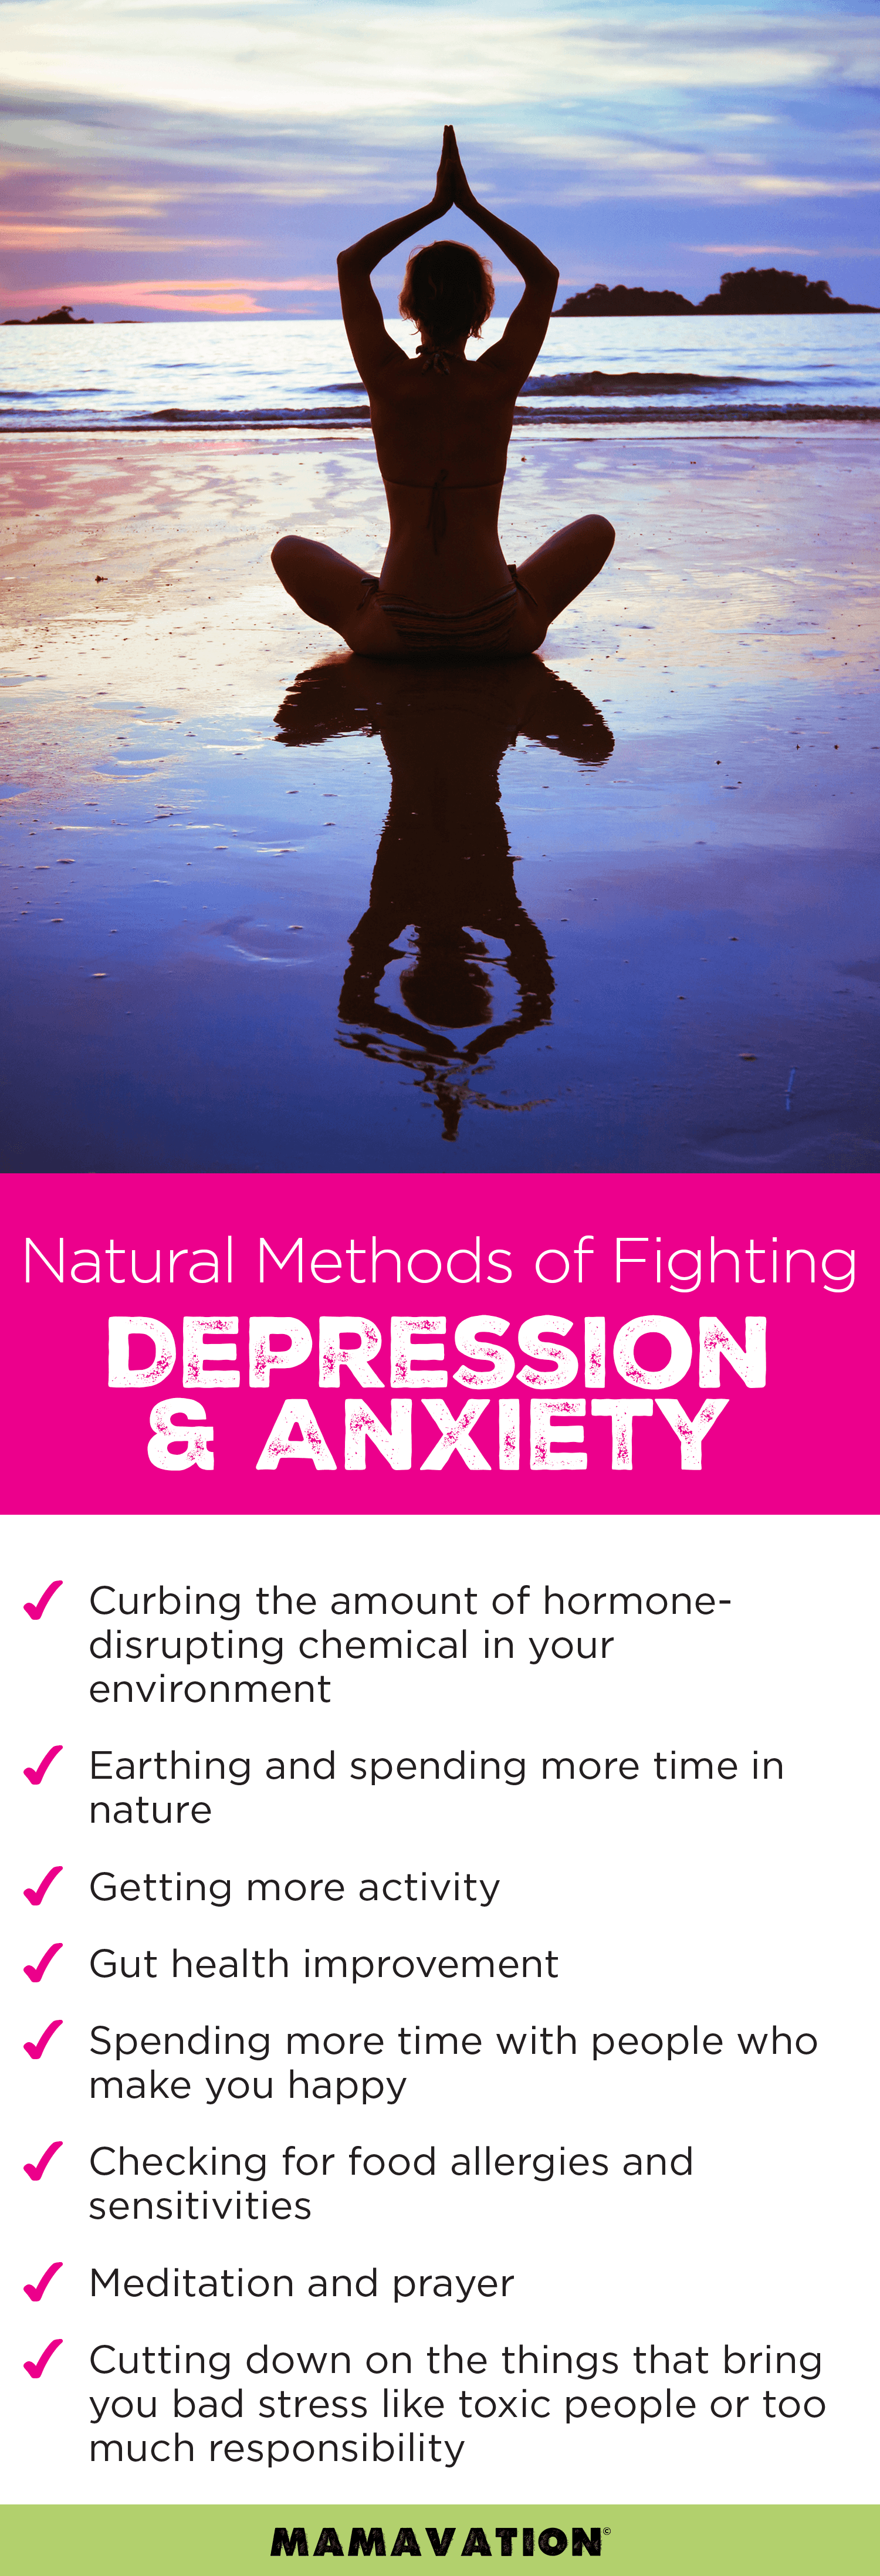 natural ways to avoid depression